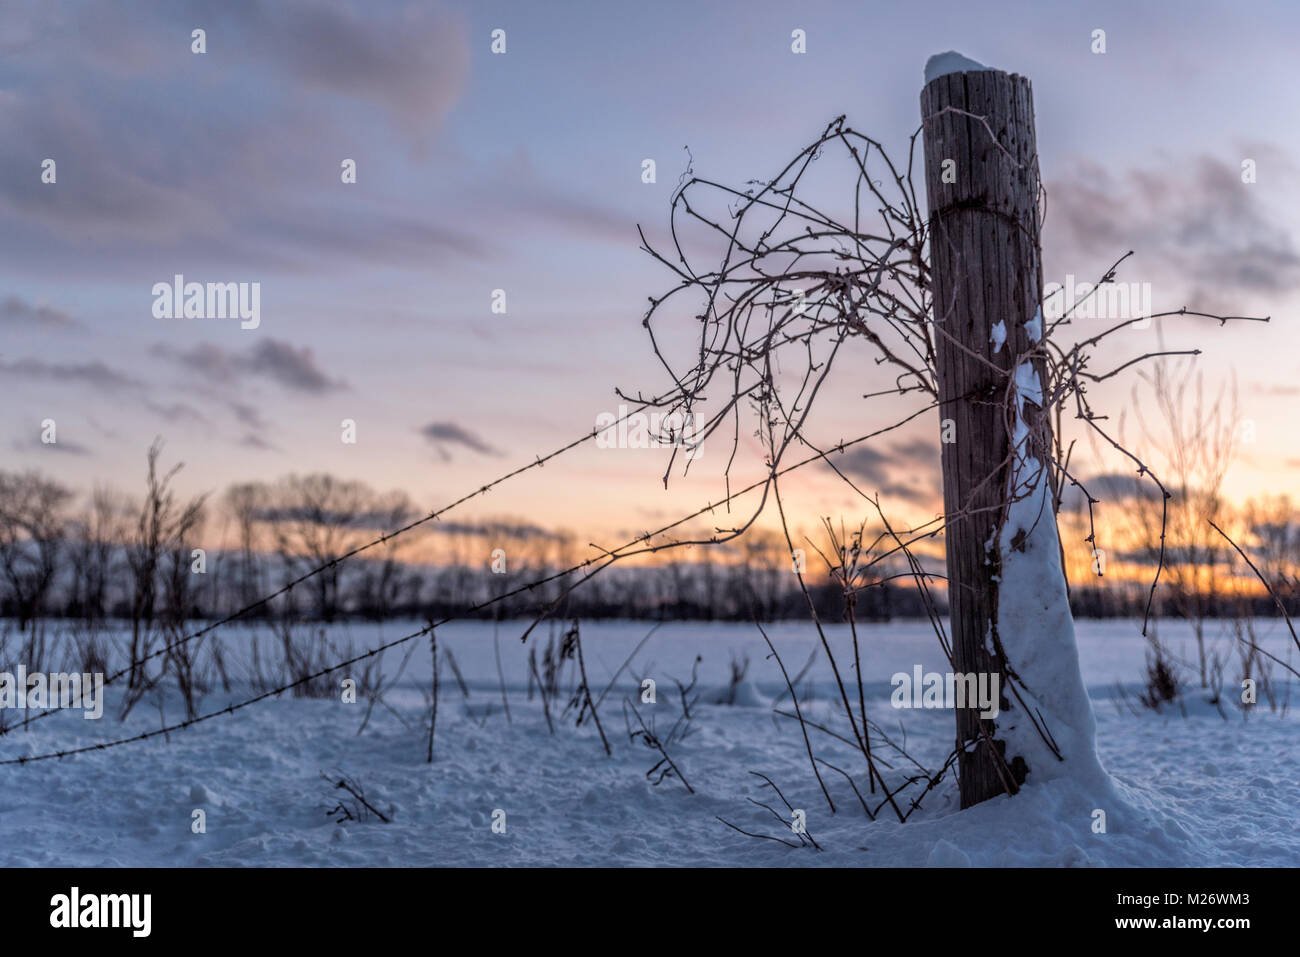 Tangled barbed wire on a fence in Michigan - Stock Image